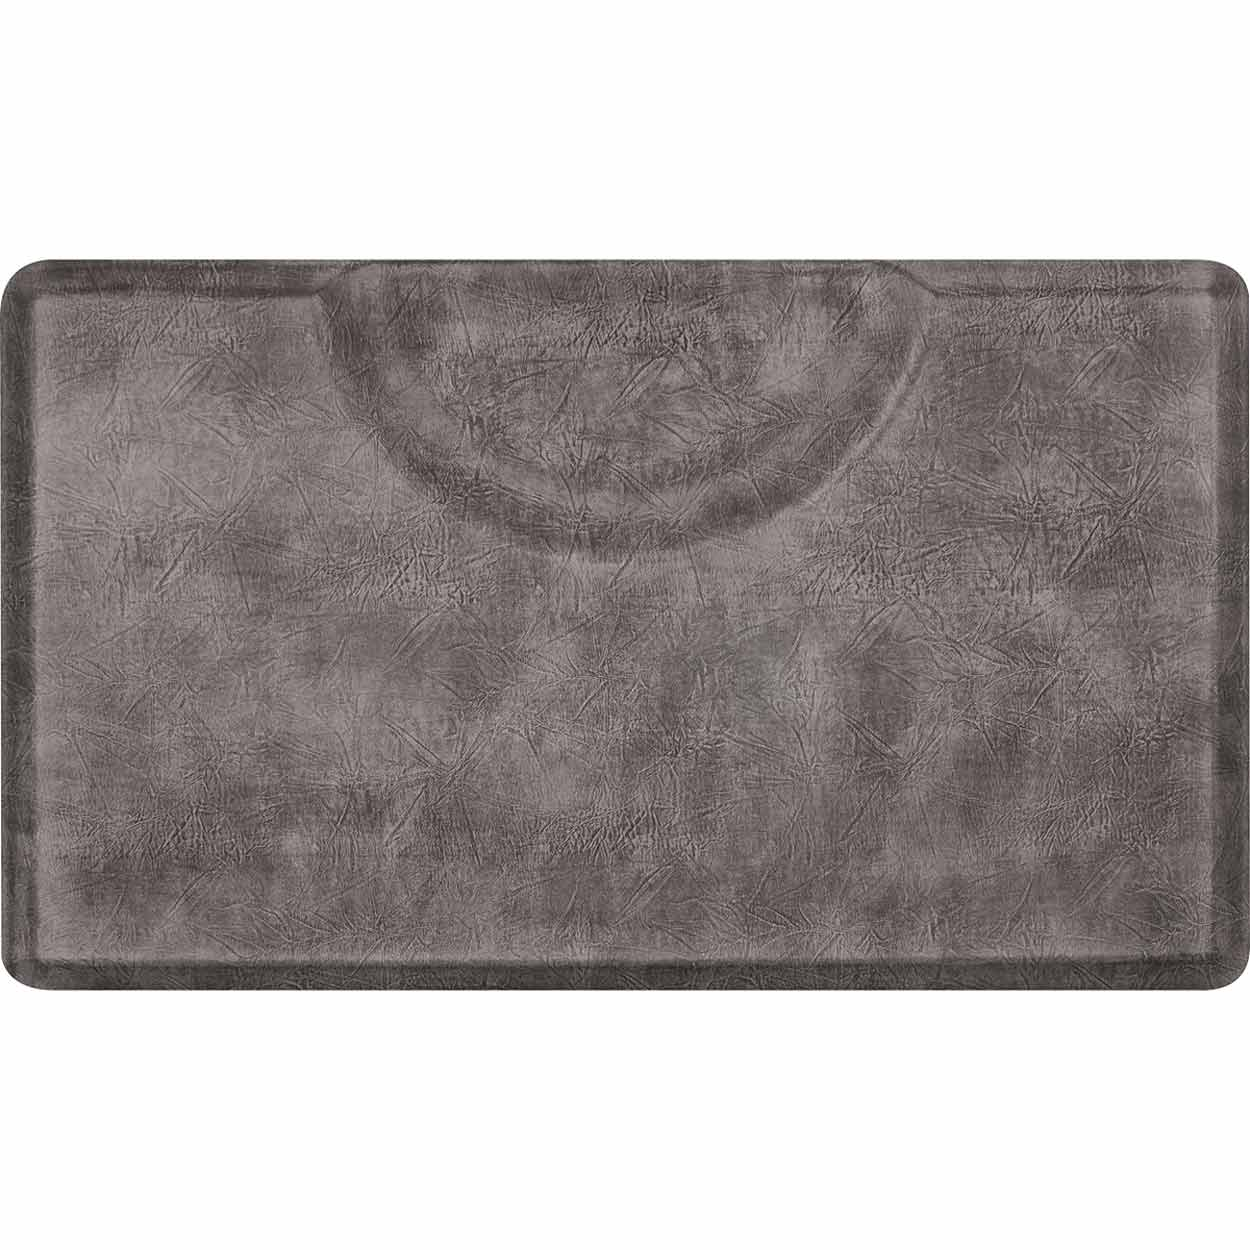 3x5 Vintage Leather Rectangle Anti-Fatigue Salon Mat alternative product image 4